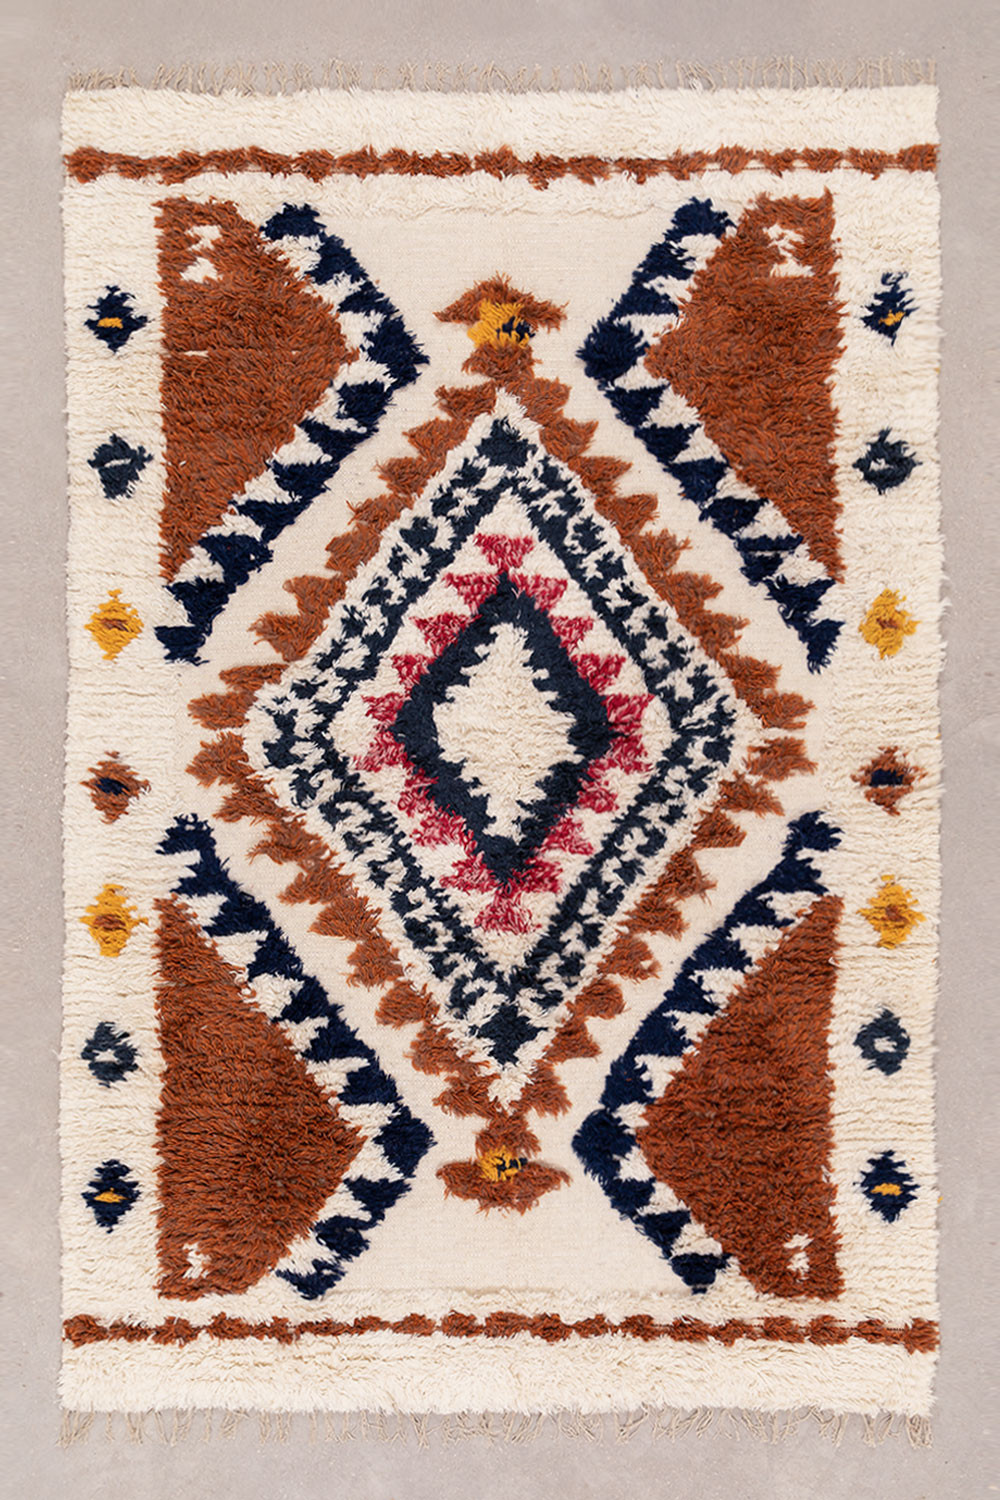 Wool and Cotton Rug (245x165 cm) Rimbel, gallery image 1